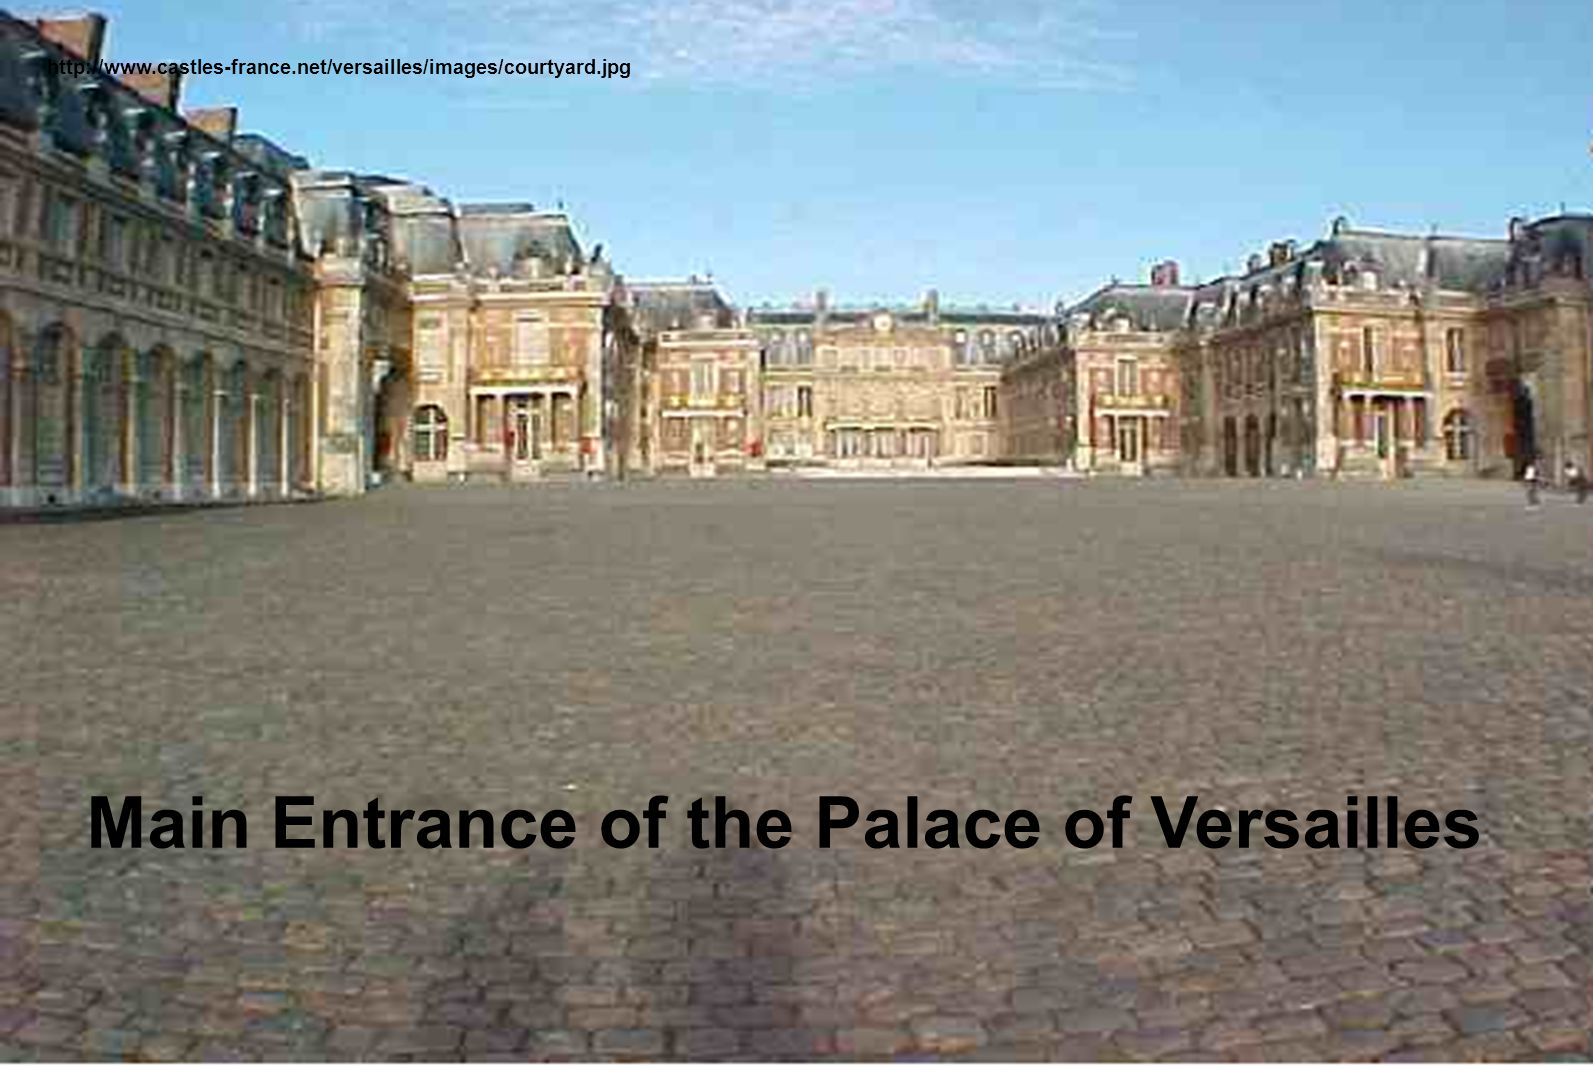 http://www.castles-france.net/versailles/images/courtyard.jpg Main Entrance of the Palace of Versailles